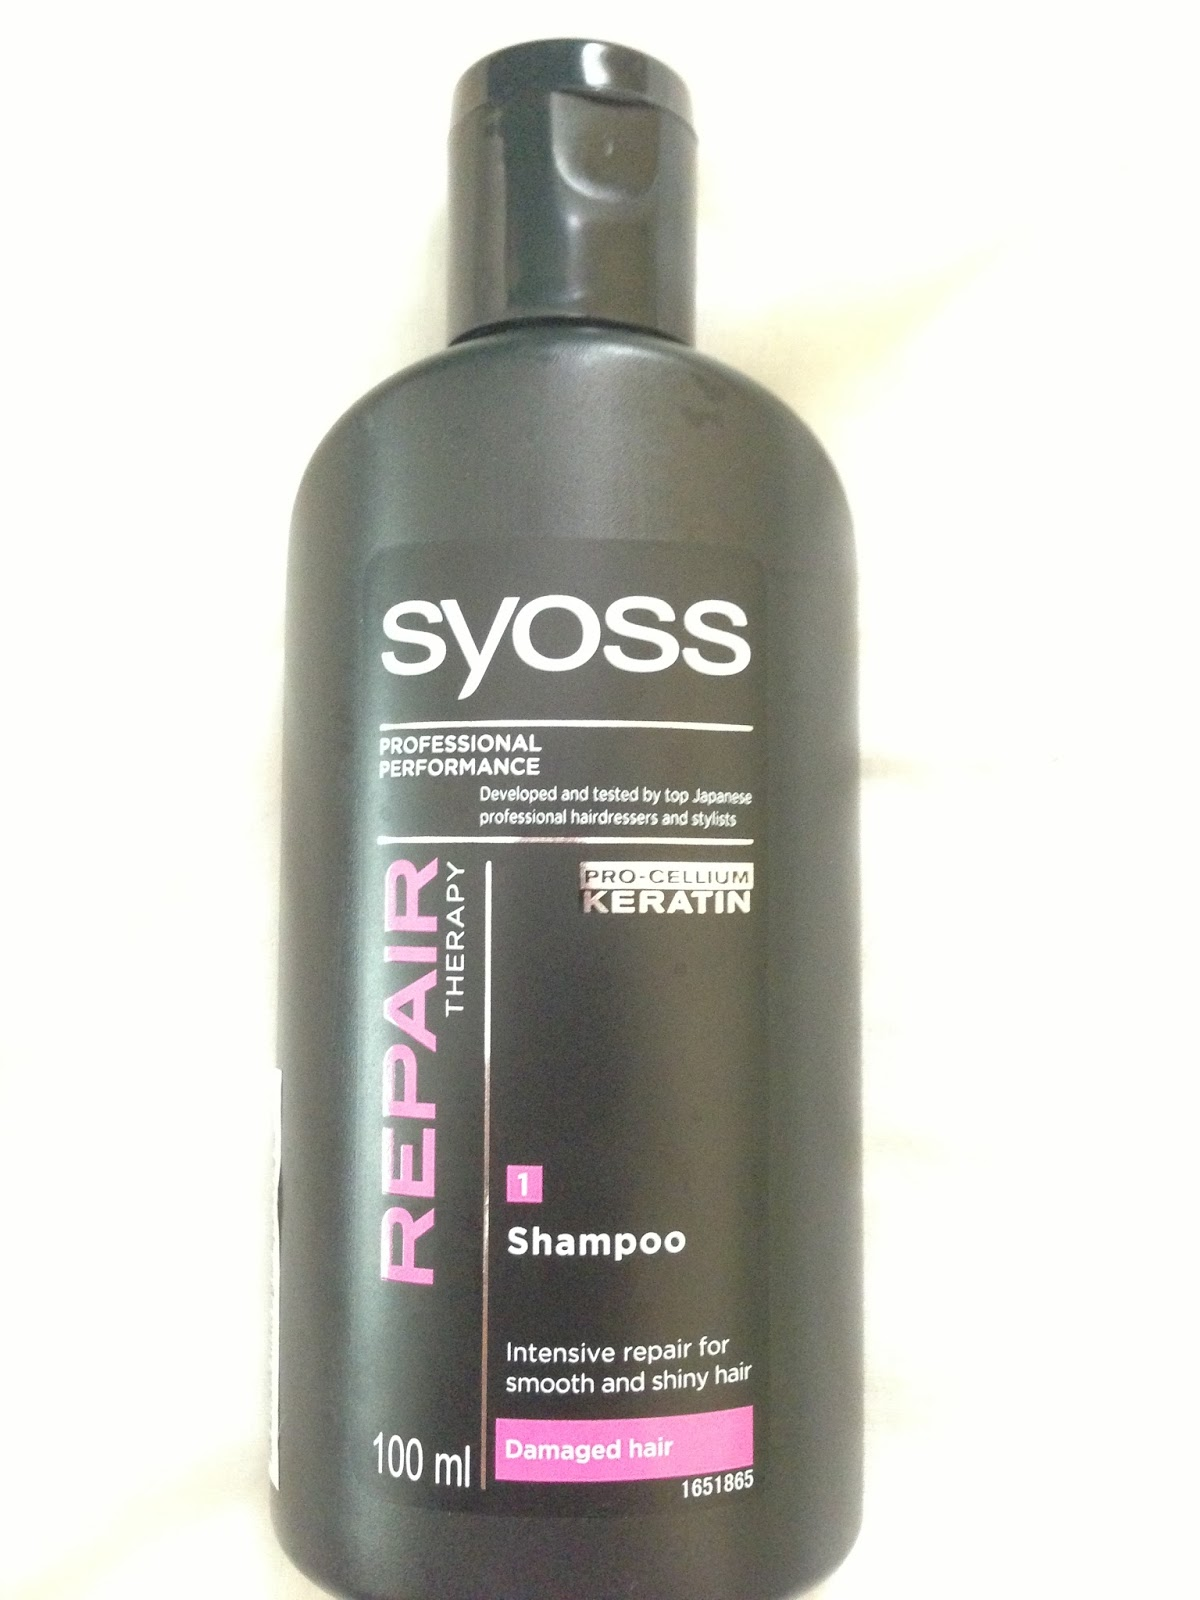 Random Things About Katy Review Syoss Shampoo For Damaged Hair